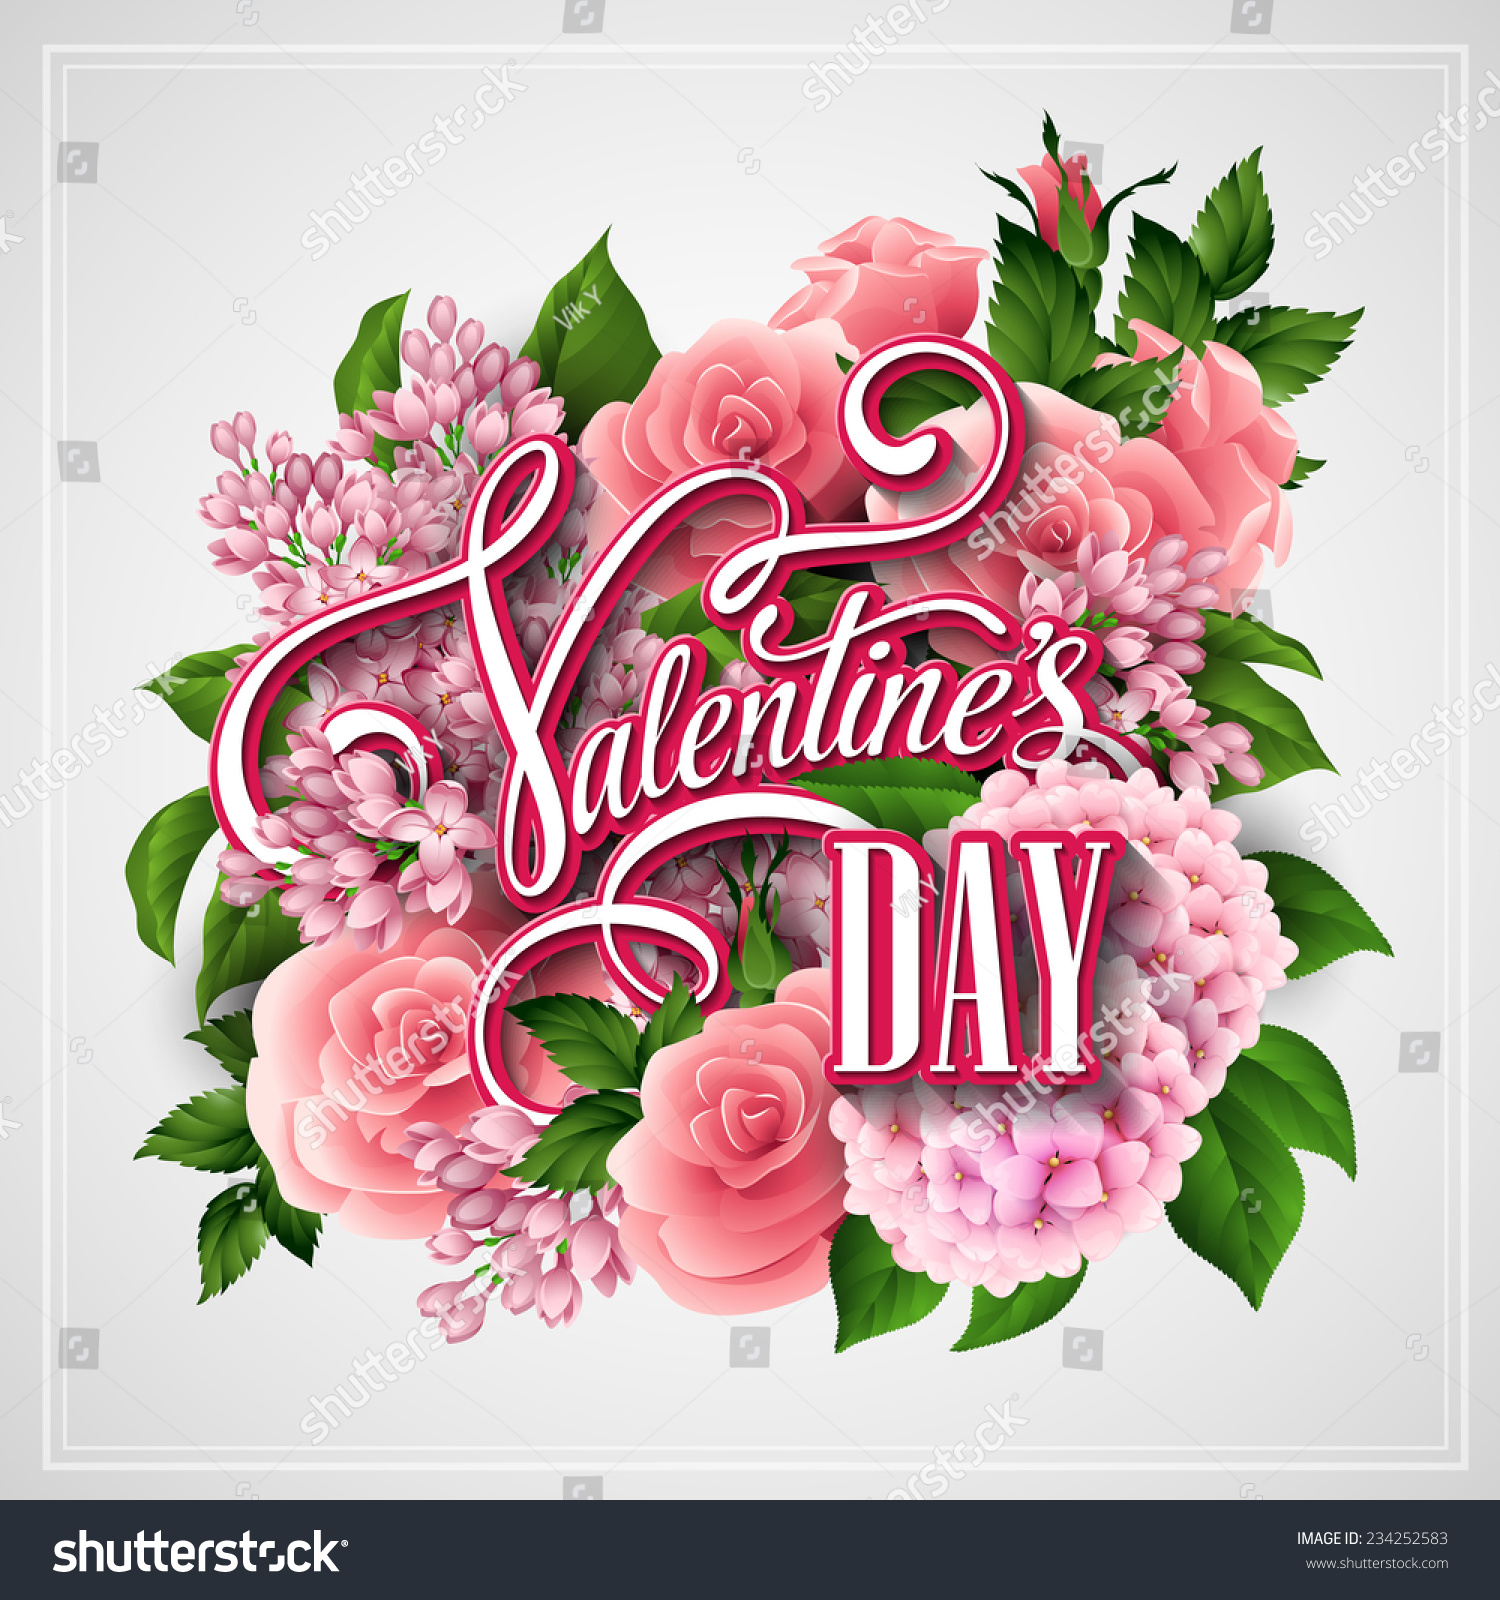 Valentines day card beautiful flowers vector stock vector hd valentines day card with beautiful flowers vector illustration izmirmasajfo